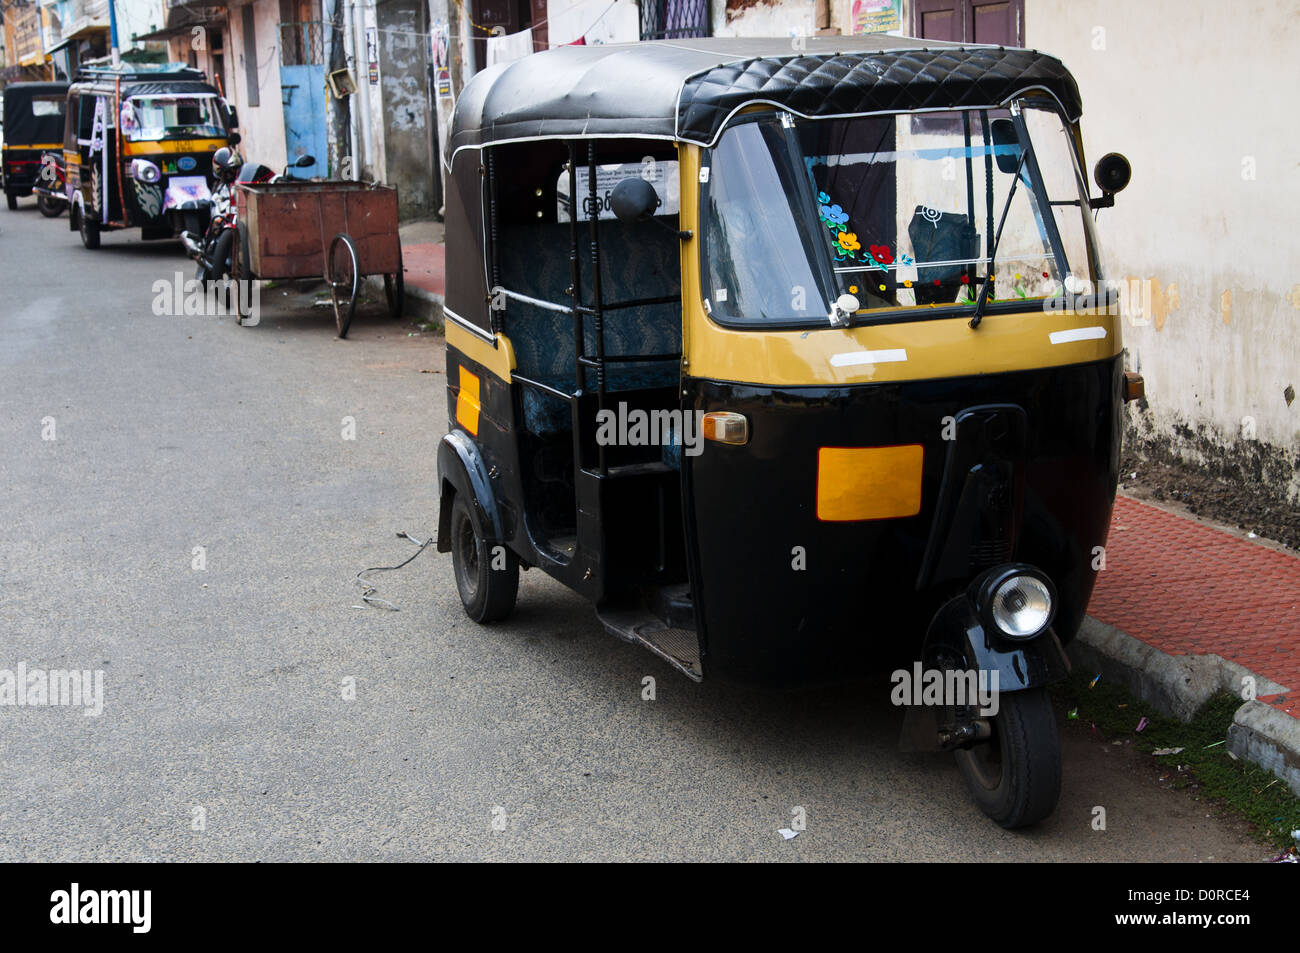 tut tuk auto rickshaw taxi in kerala stock photo. Black Bedroom Furniture Sets. Home Design Ideas